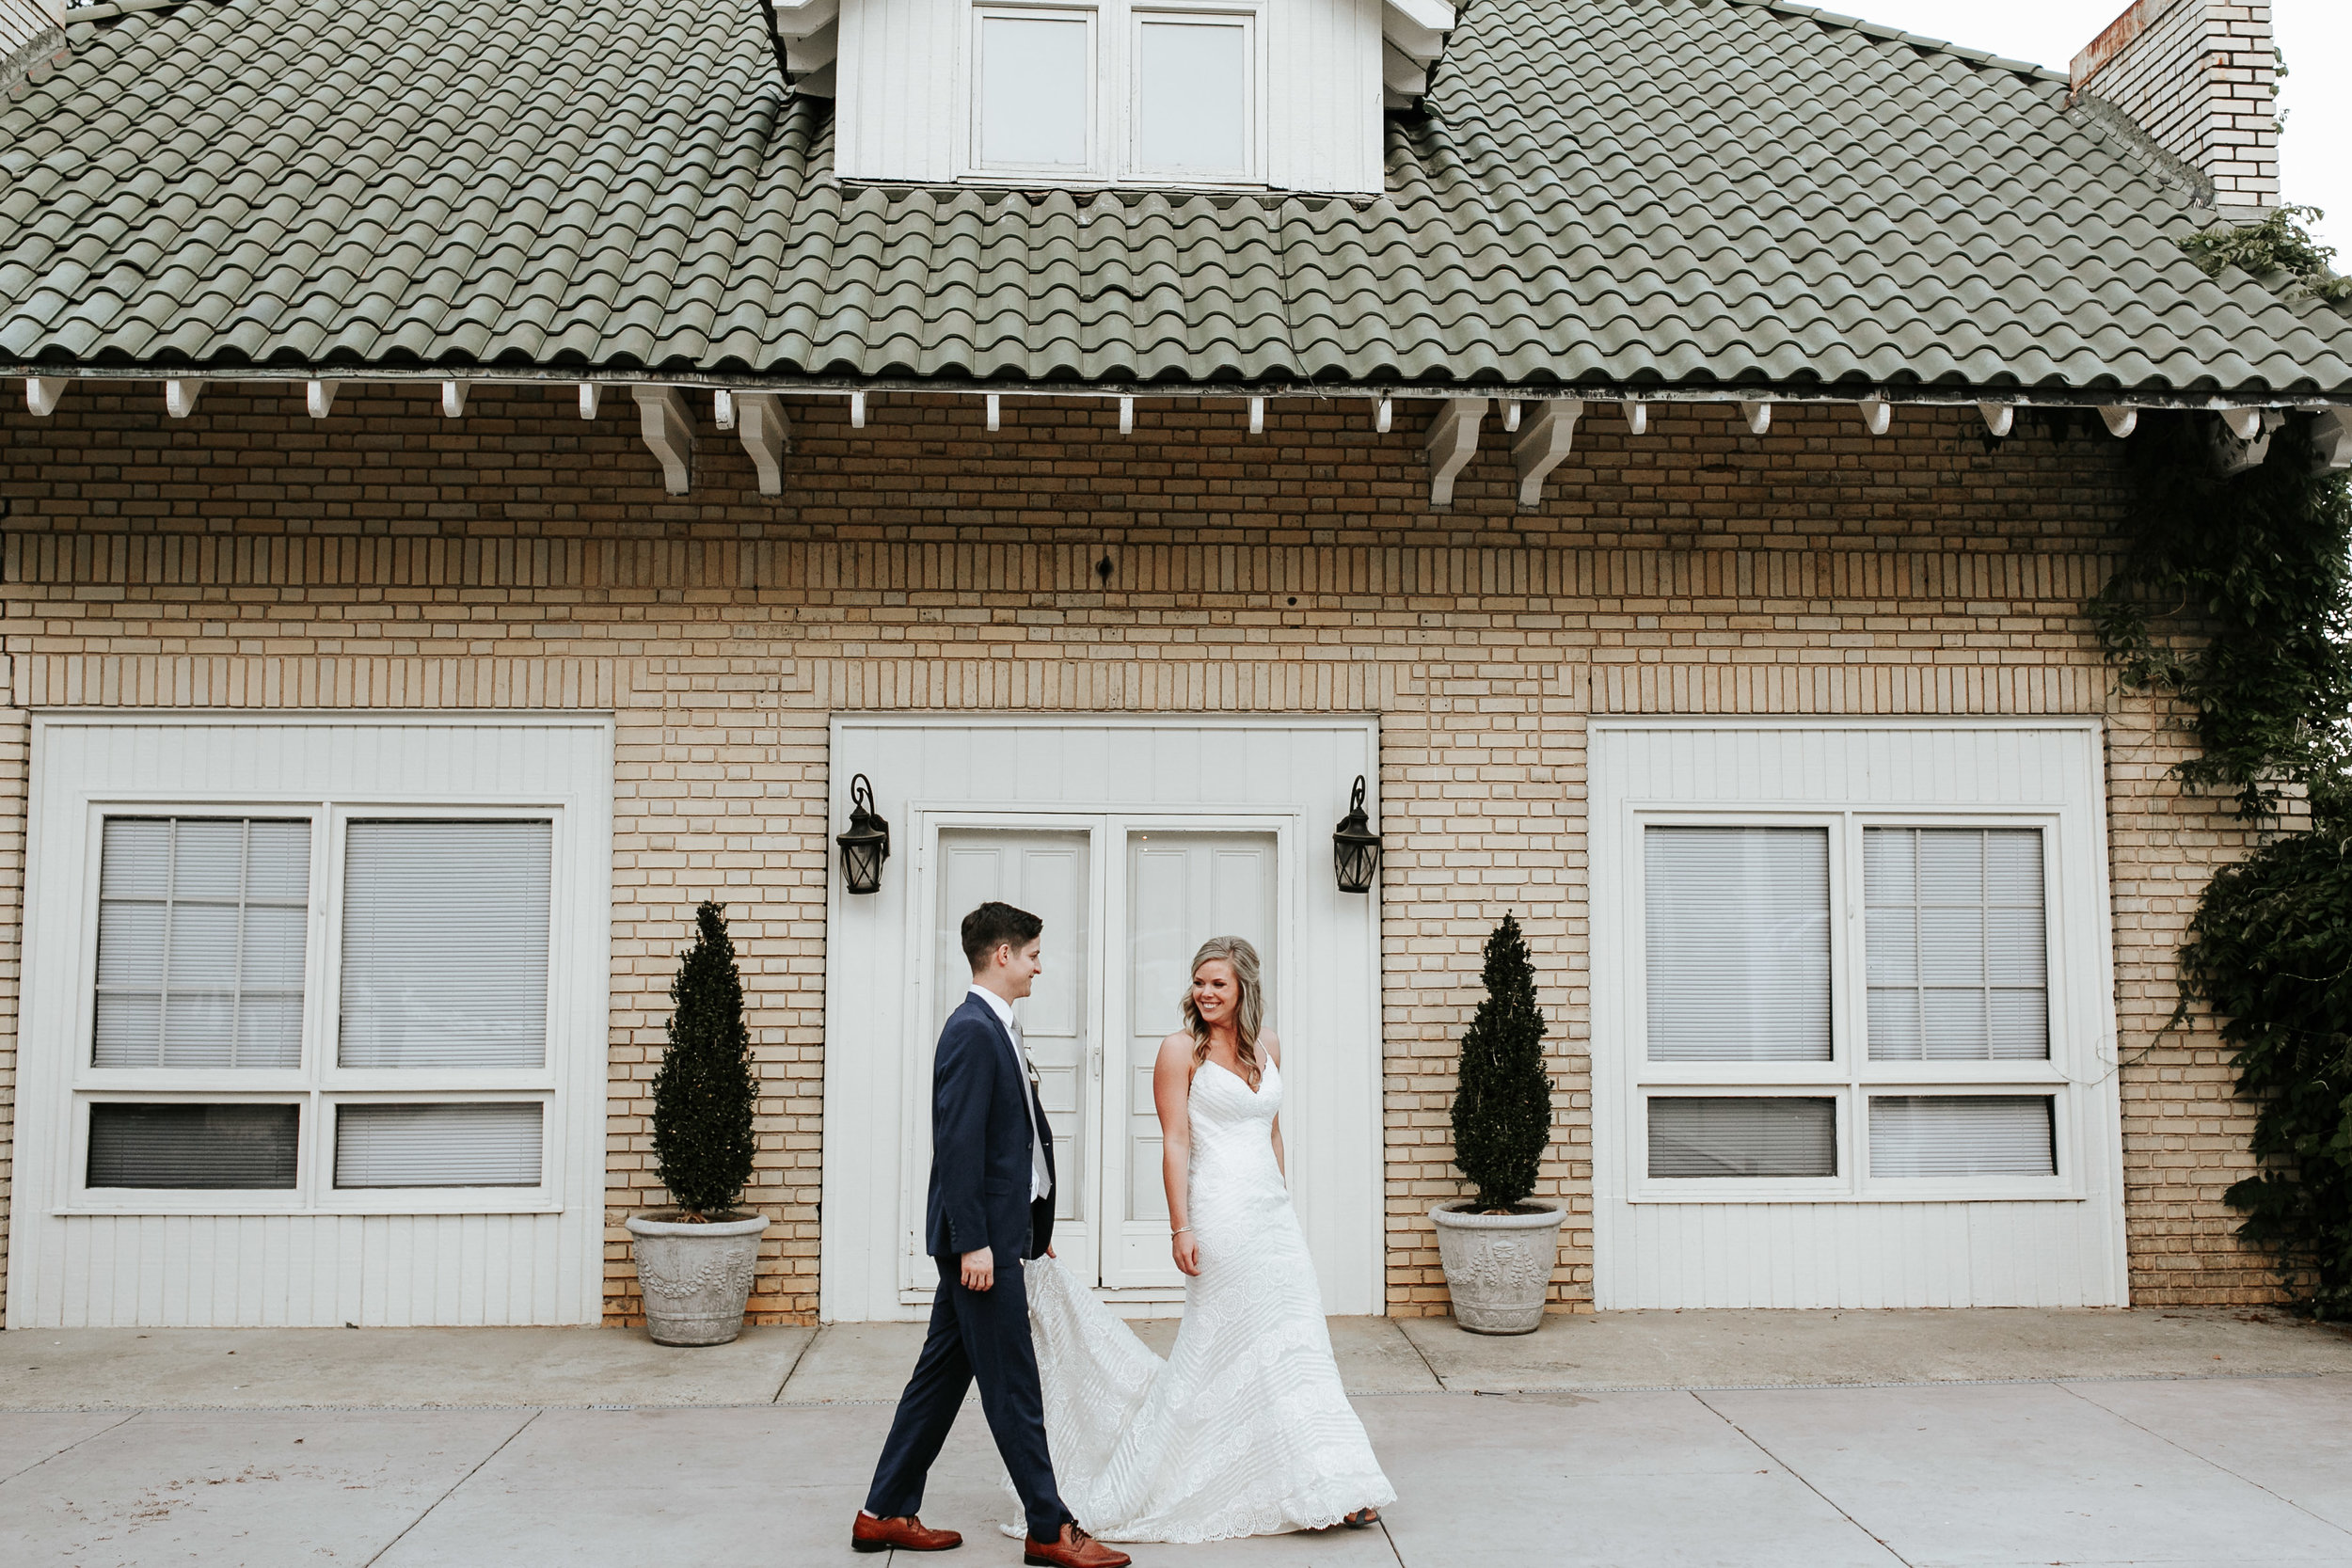 michellebrandonwedding-47.jpg